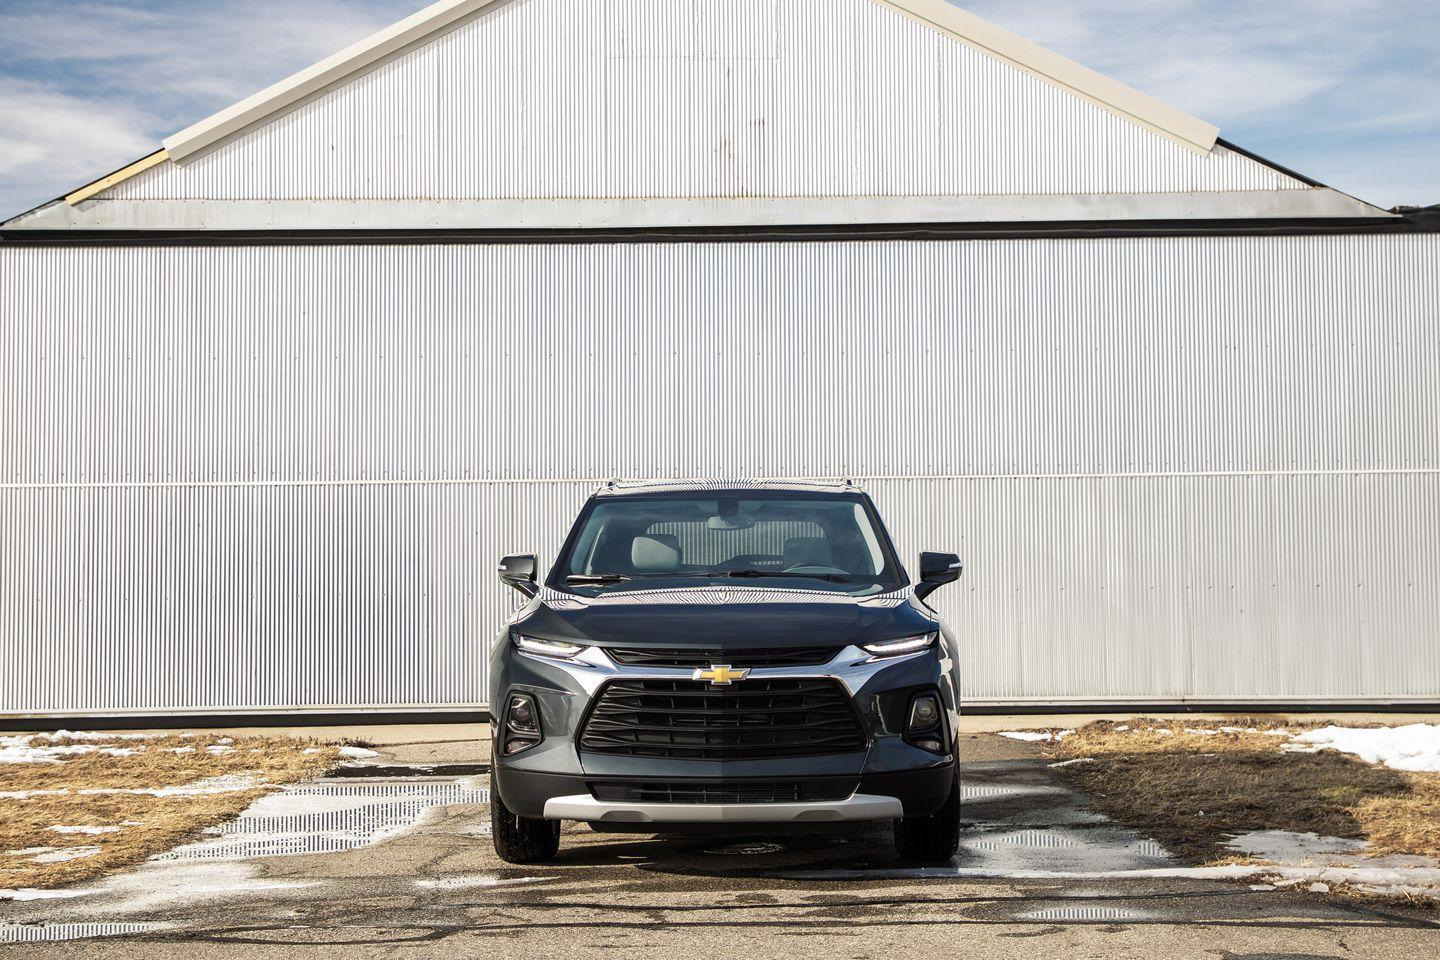 "<p>While we appreciate that <a href=""https://www.caranddriver.com/reviews/a26113708/2019-chevrolet-blazer-by-the-numbers/"" rel=""nofollow noopener"" target=""_blank"" data-ylk=""slk:the Blazer's top-tier RS model"" class=""link rapid-noclick-resp"">the Blazer's top-tier RS model</a> has sporty upgrades and that the top-of-the-line Premier trim has desirable features, they're not the greatest value. The base model starts at $29,995, and the next-level 2.5L Cloth (seen here) kicks off at $33,495. However, the as-tested price is $35,340.</p>"